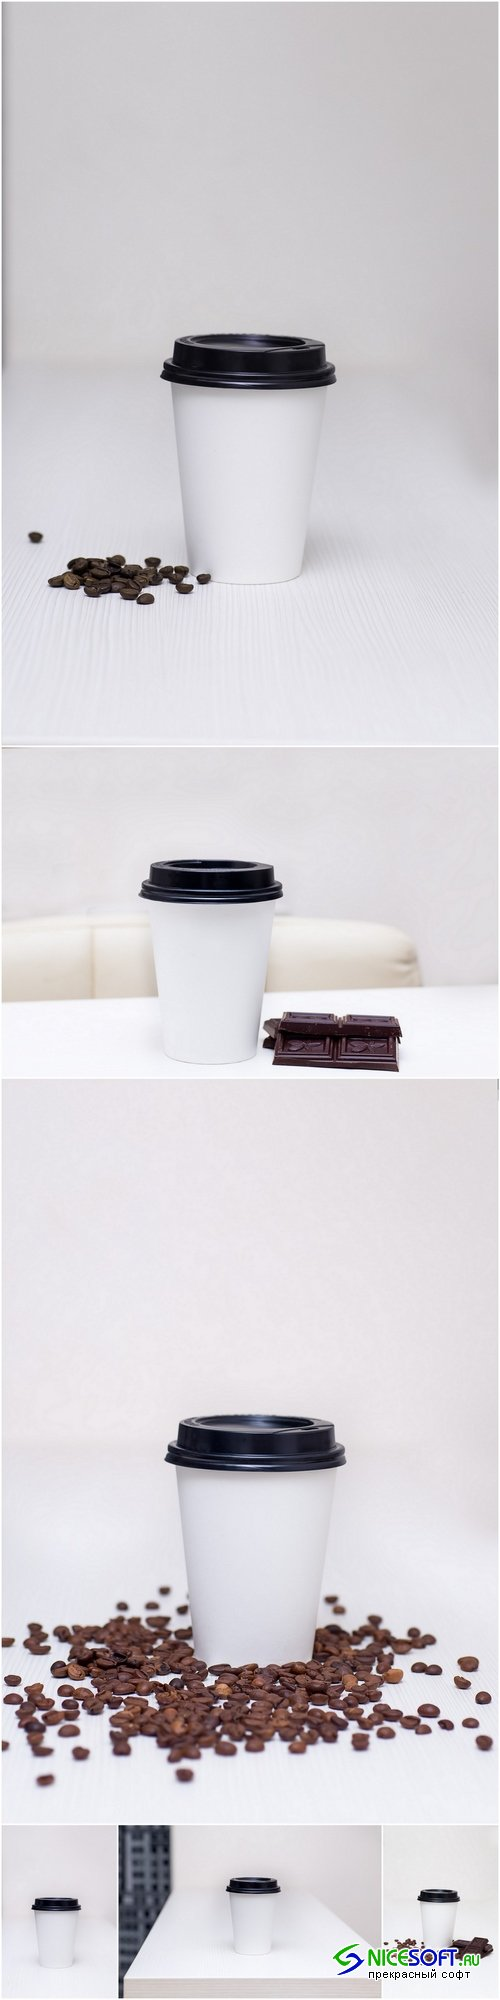 Paper cup with coffee and chocolate